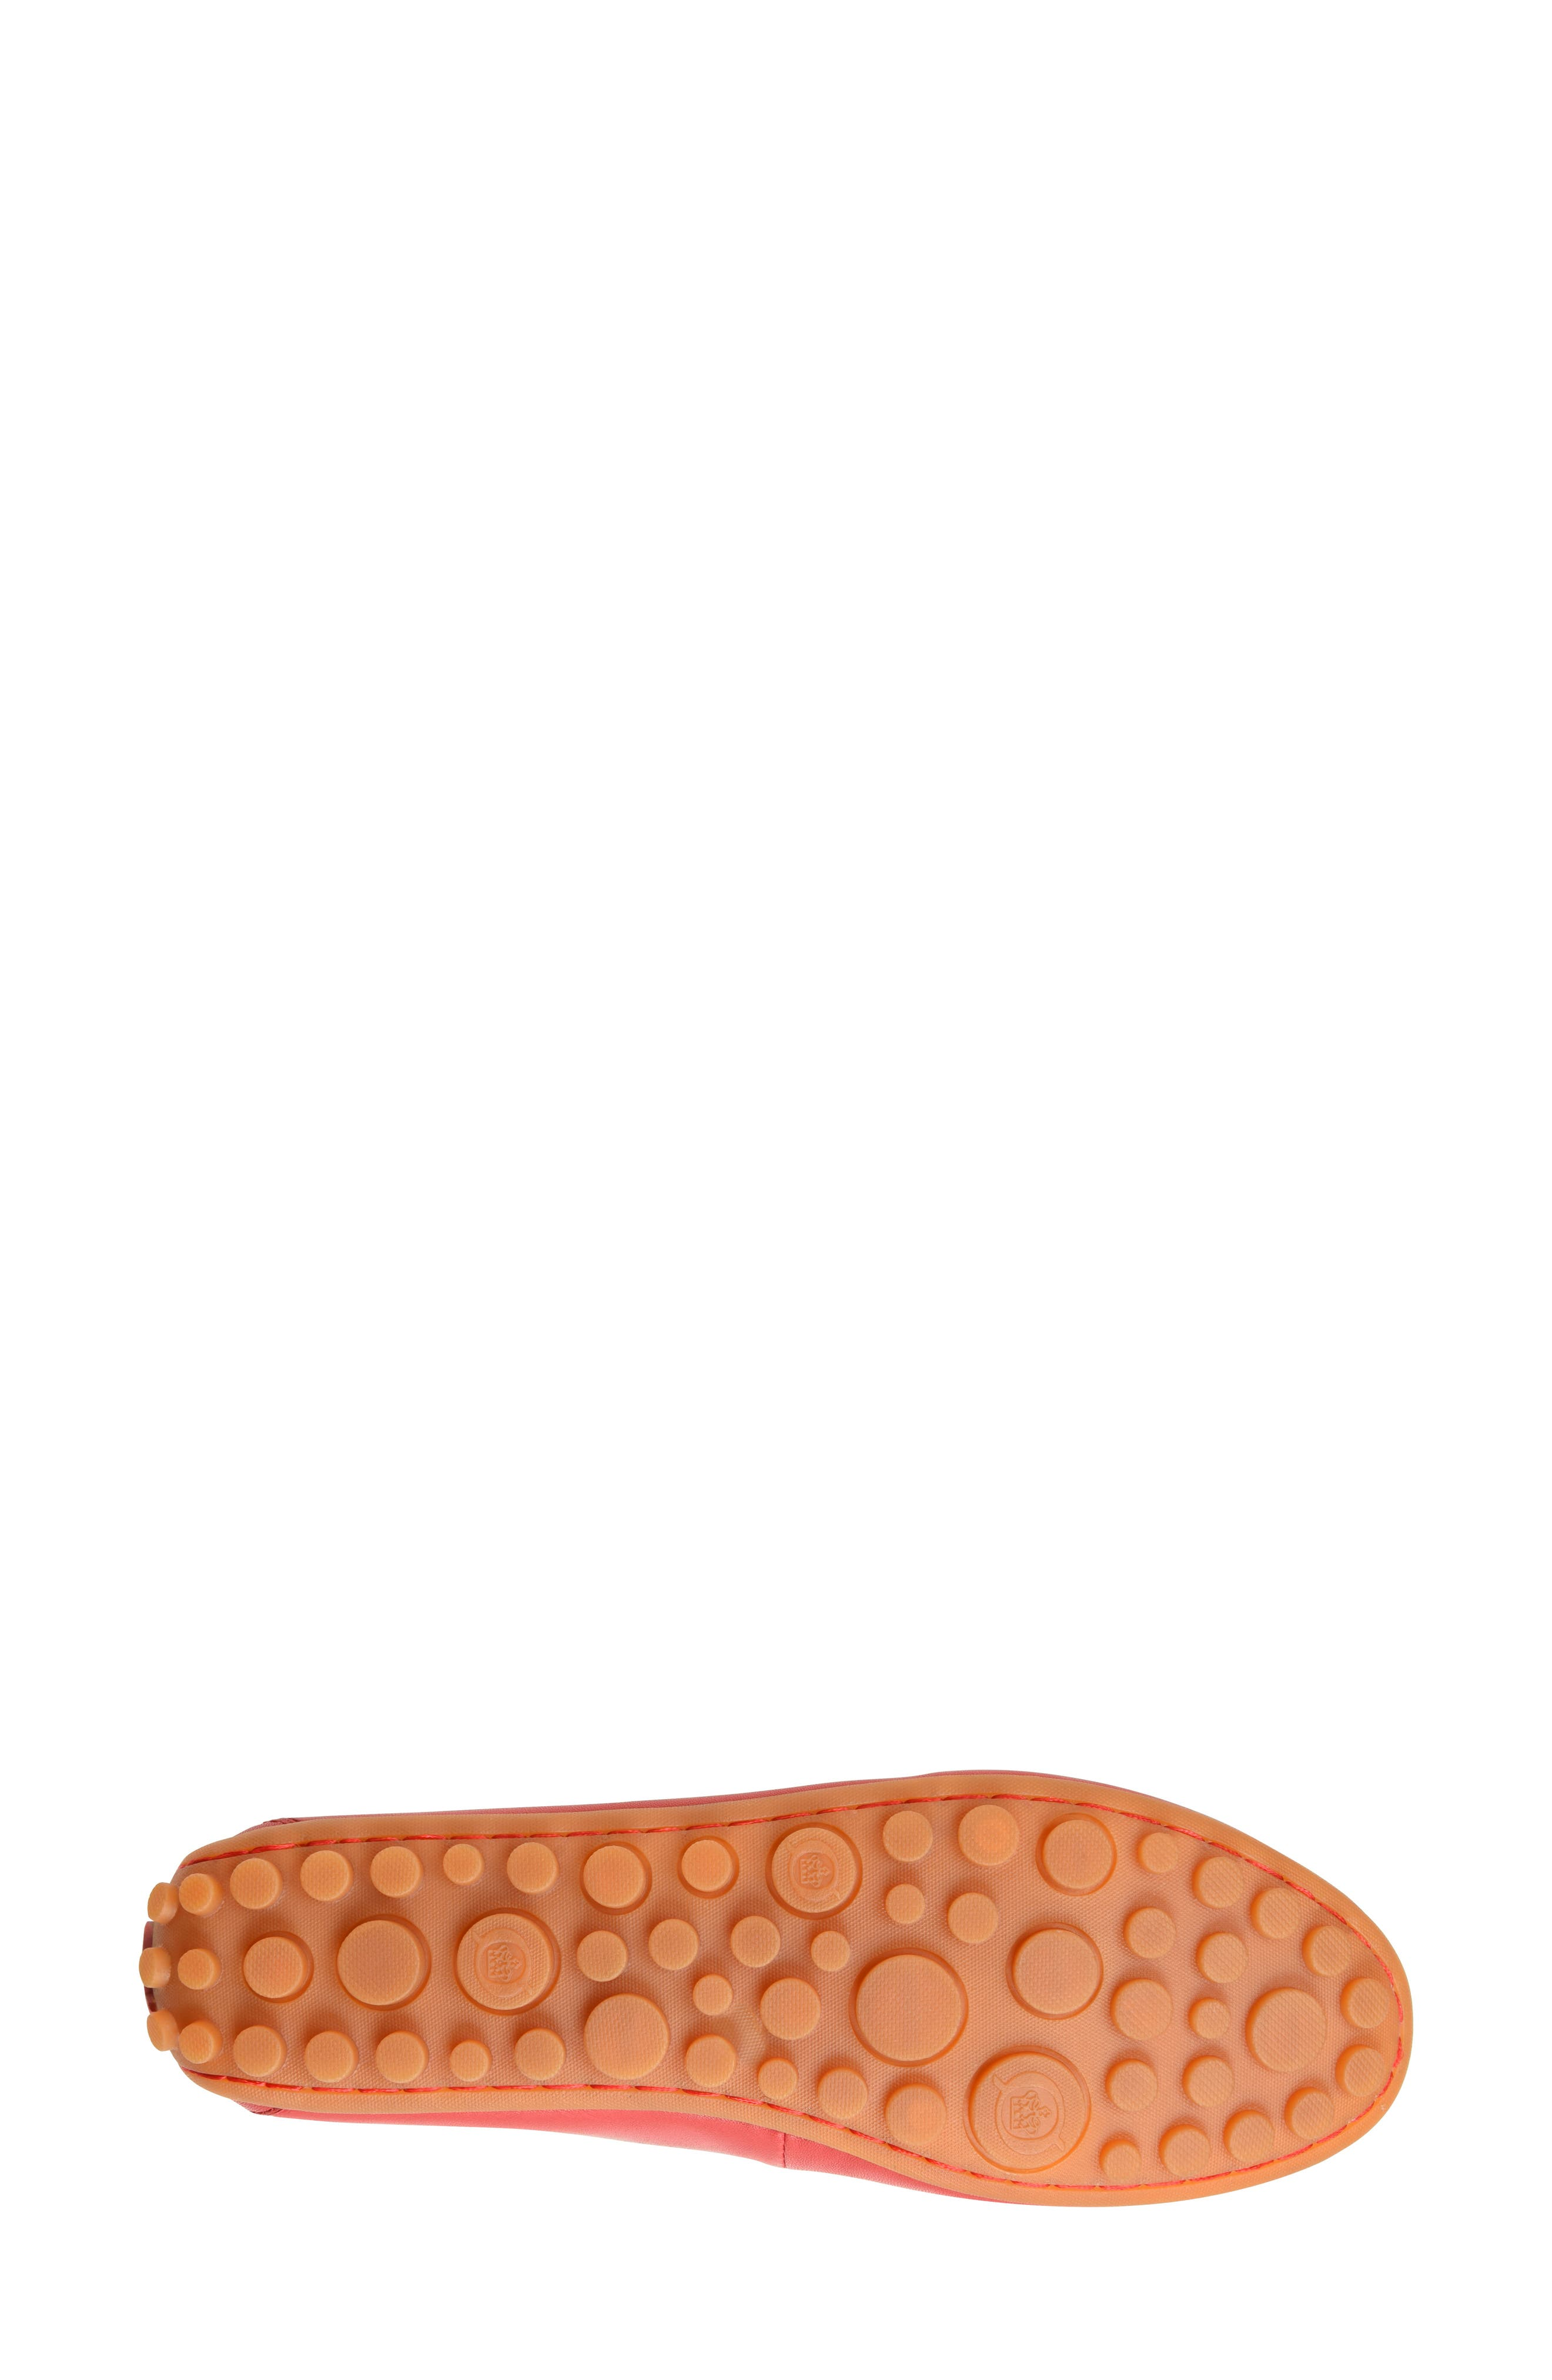 Malena Driving Loafer,                             Alternate thumbnail 5, color,                             RED LEATHER